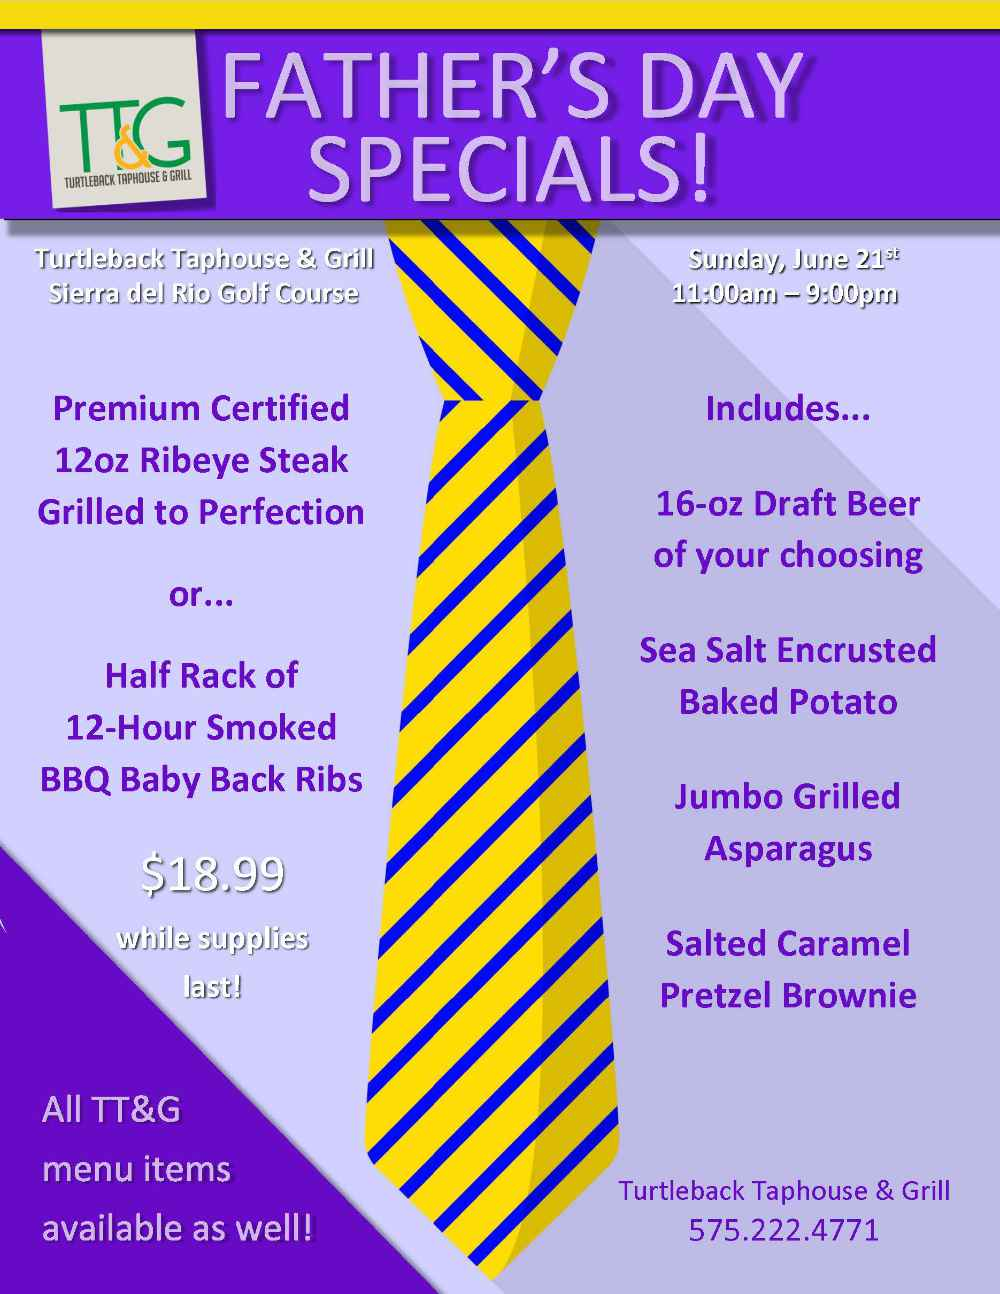 Father's Day at Sierra del Rio's Turtleback Taphouse & Grill